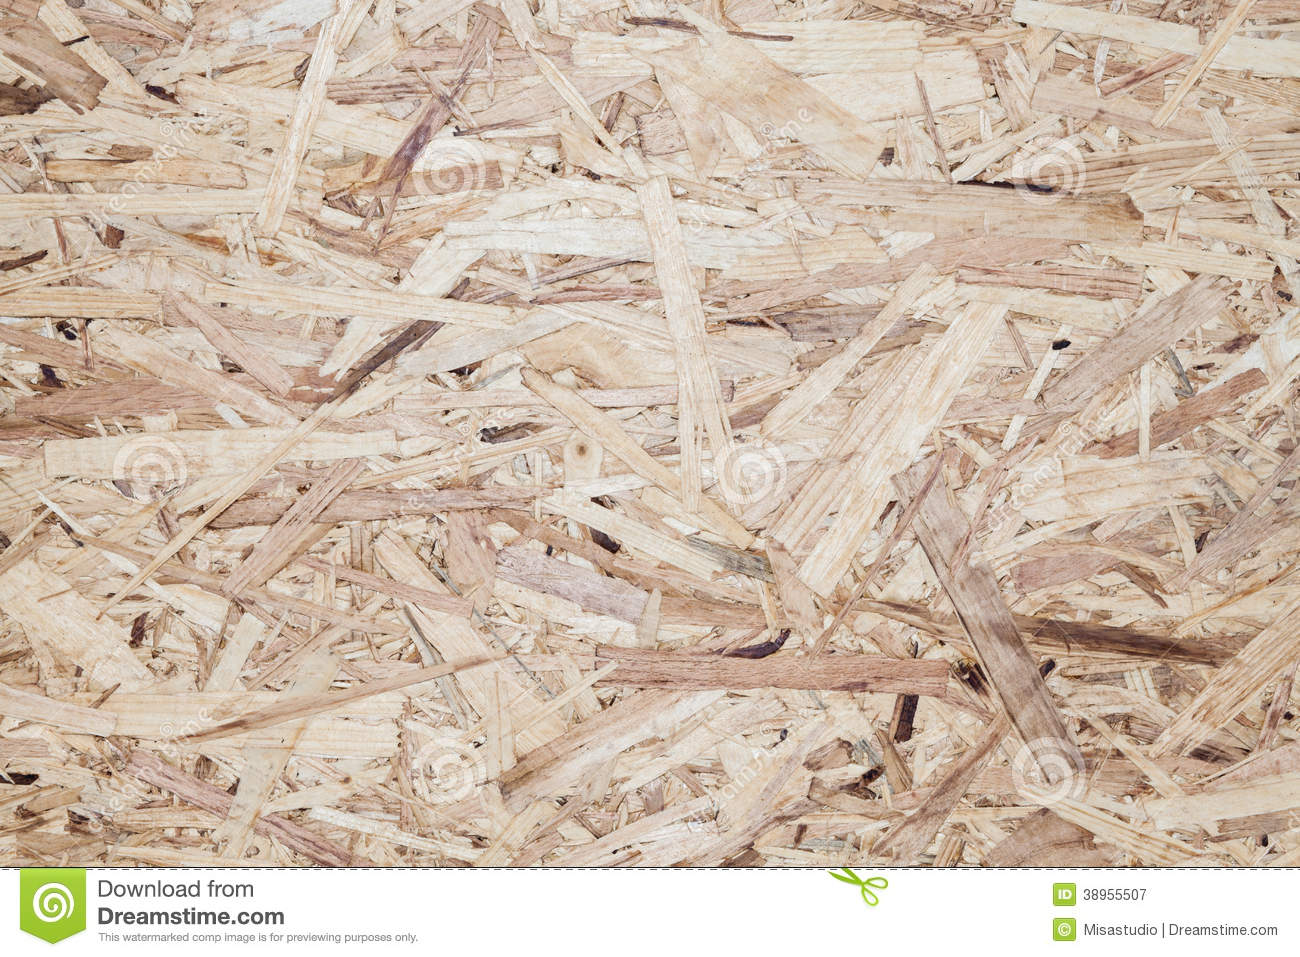 osb wood fiberboard background texture stock photo image 38955507. Black Bedroom Furniture Sets. Home Design Ideas